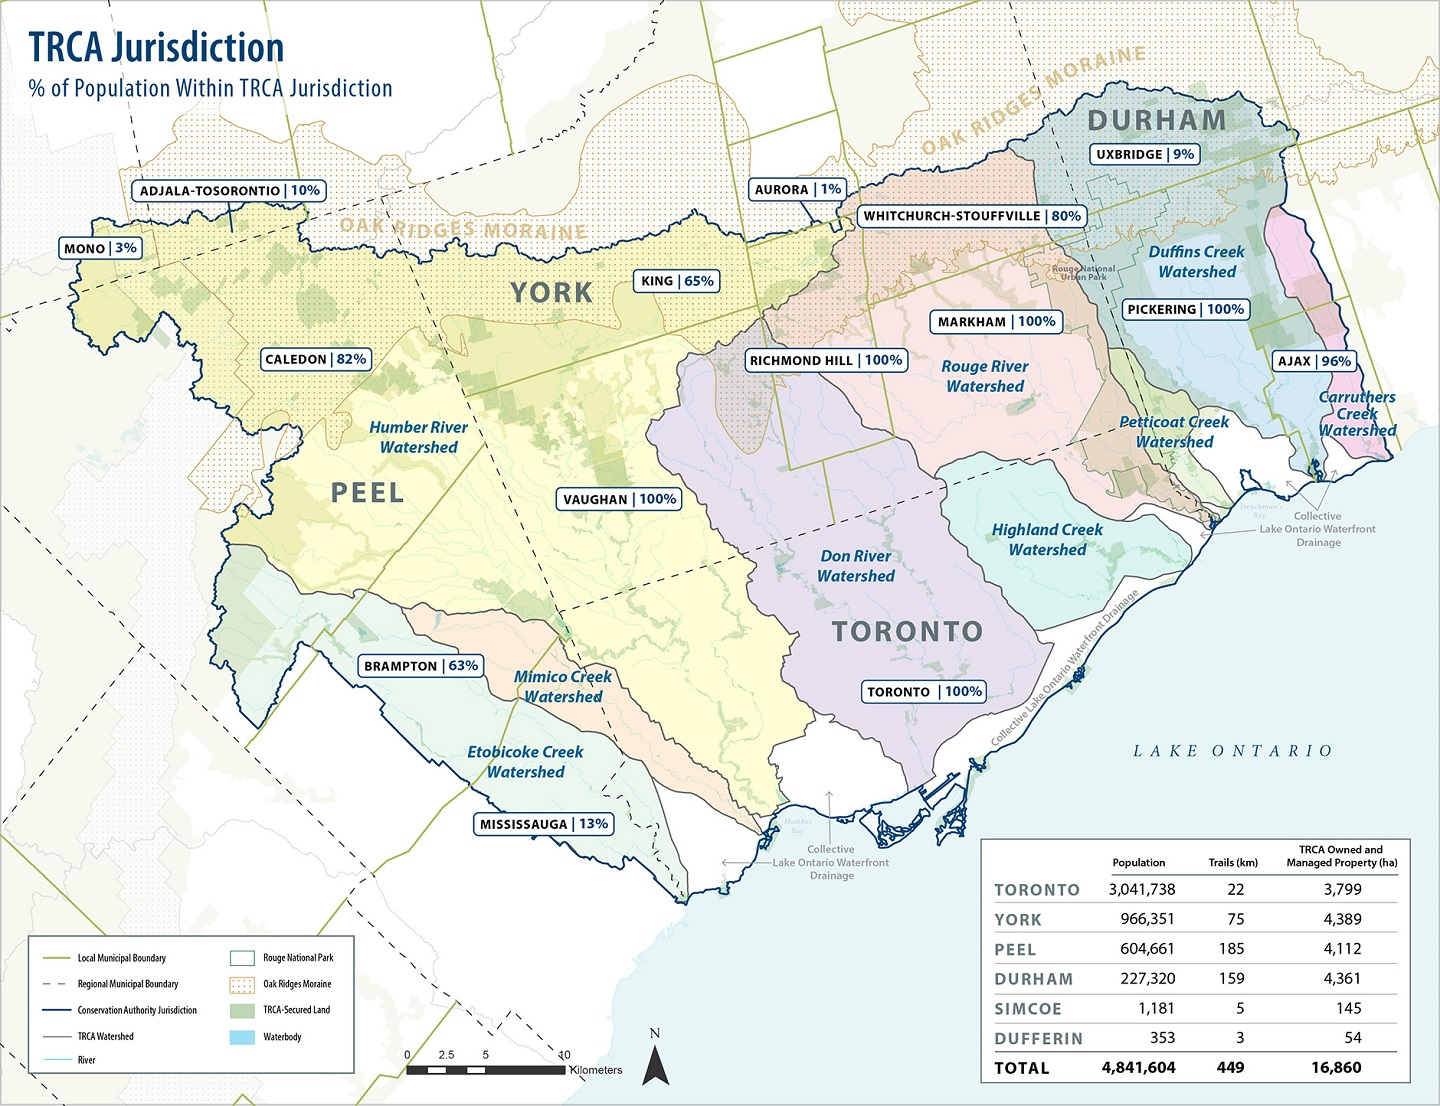 map of TRCA jurisdiction showing municipalities and population